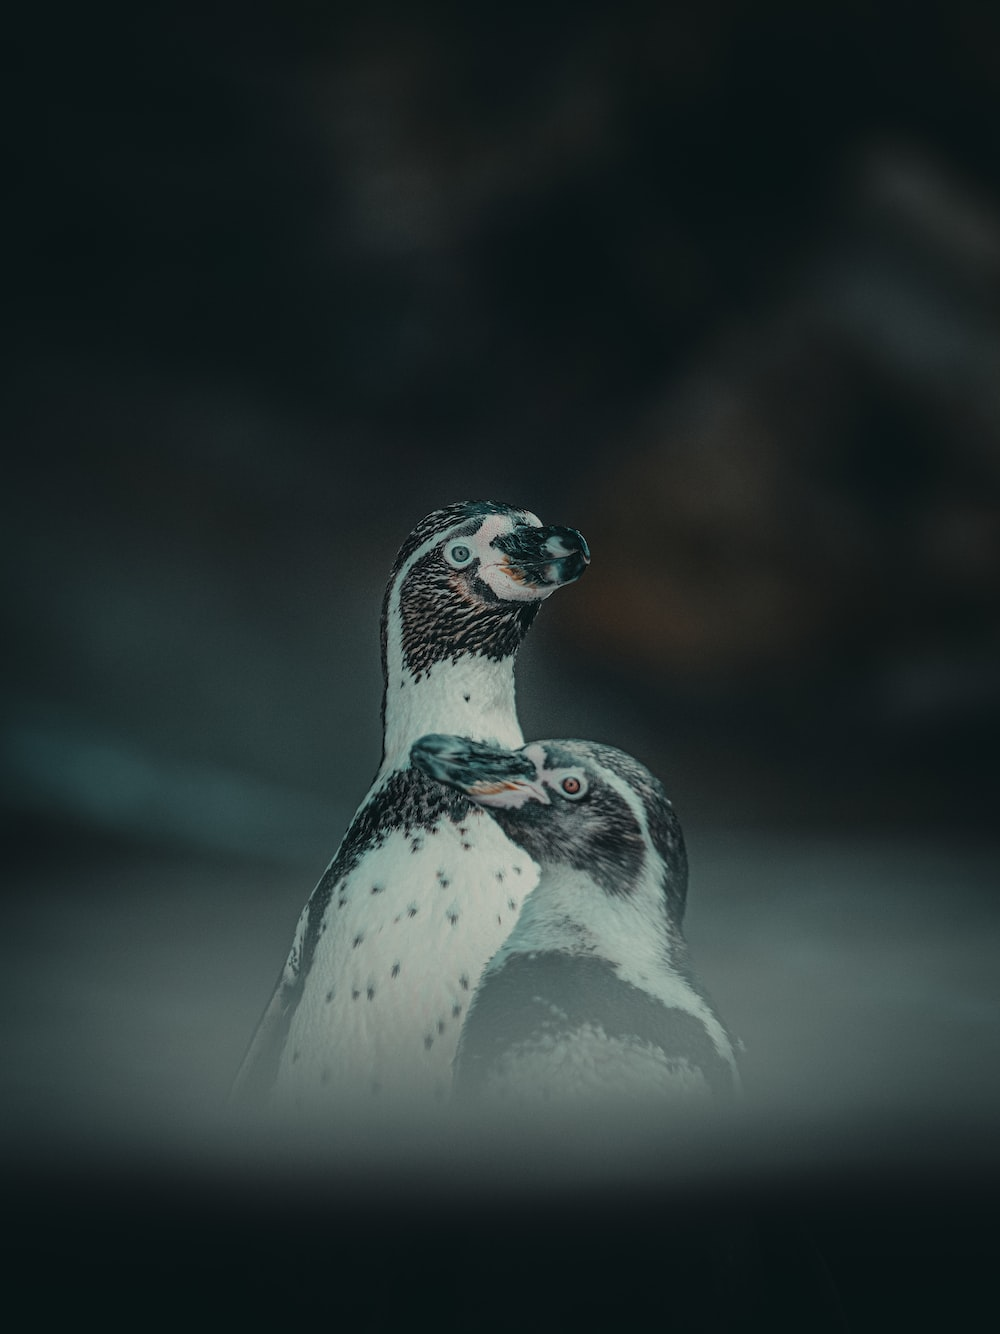 white and black penguin in close up photography